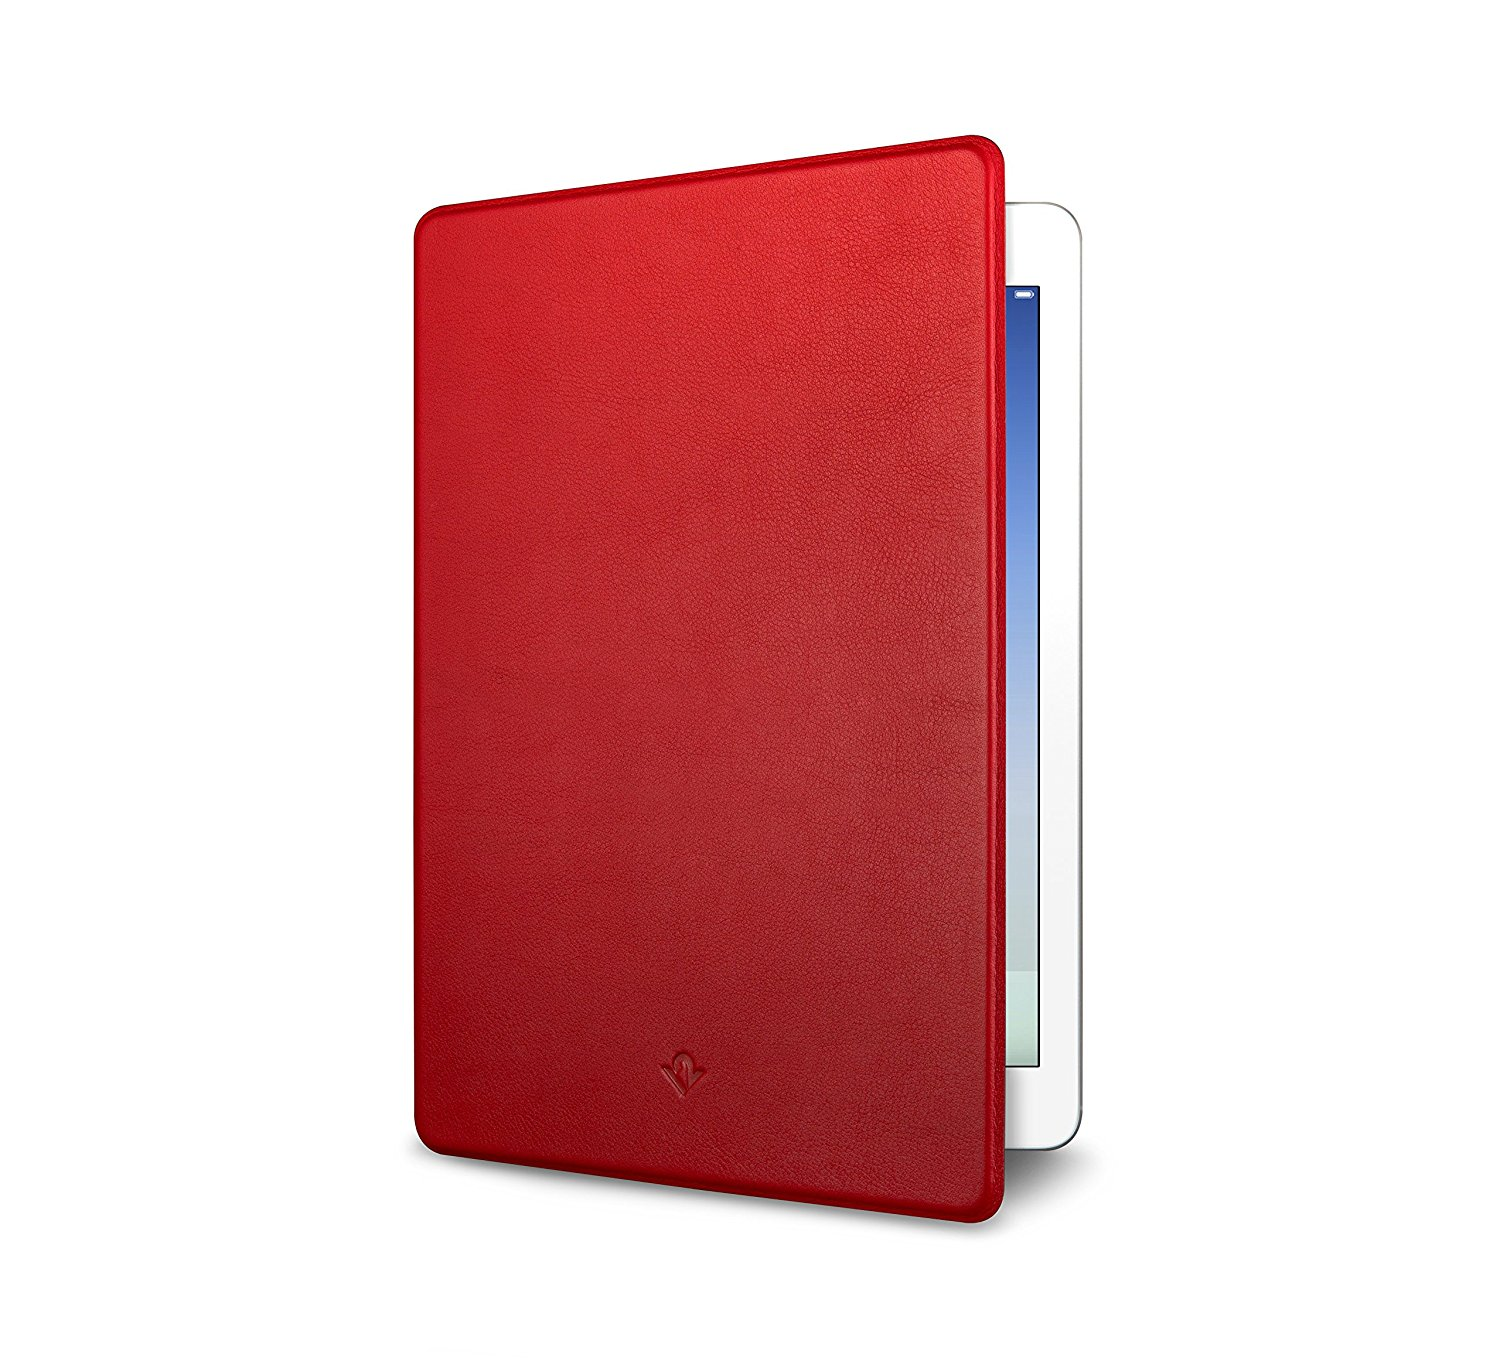 Twelve South SurfacePad Schutzhülle Case Cover iPad 9.7 (2017) iPad Air rot – Bild 1